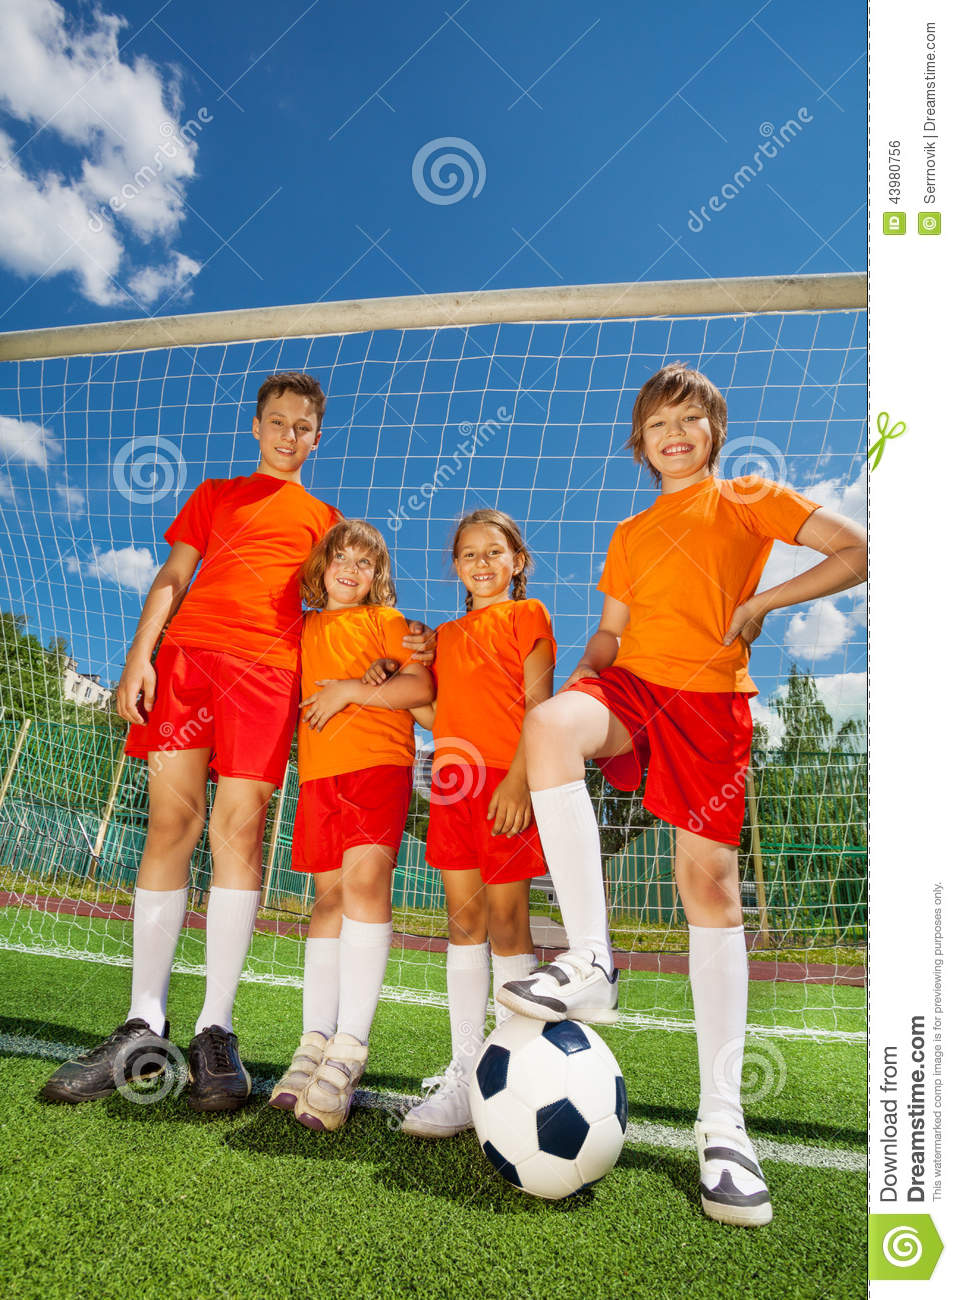 Children of different height with football